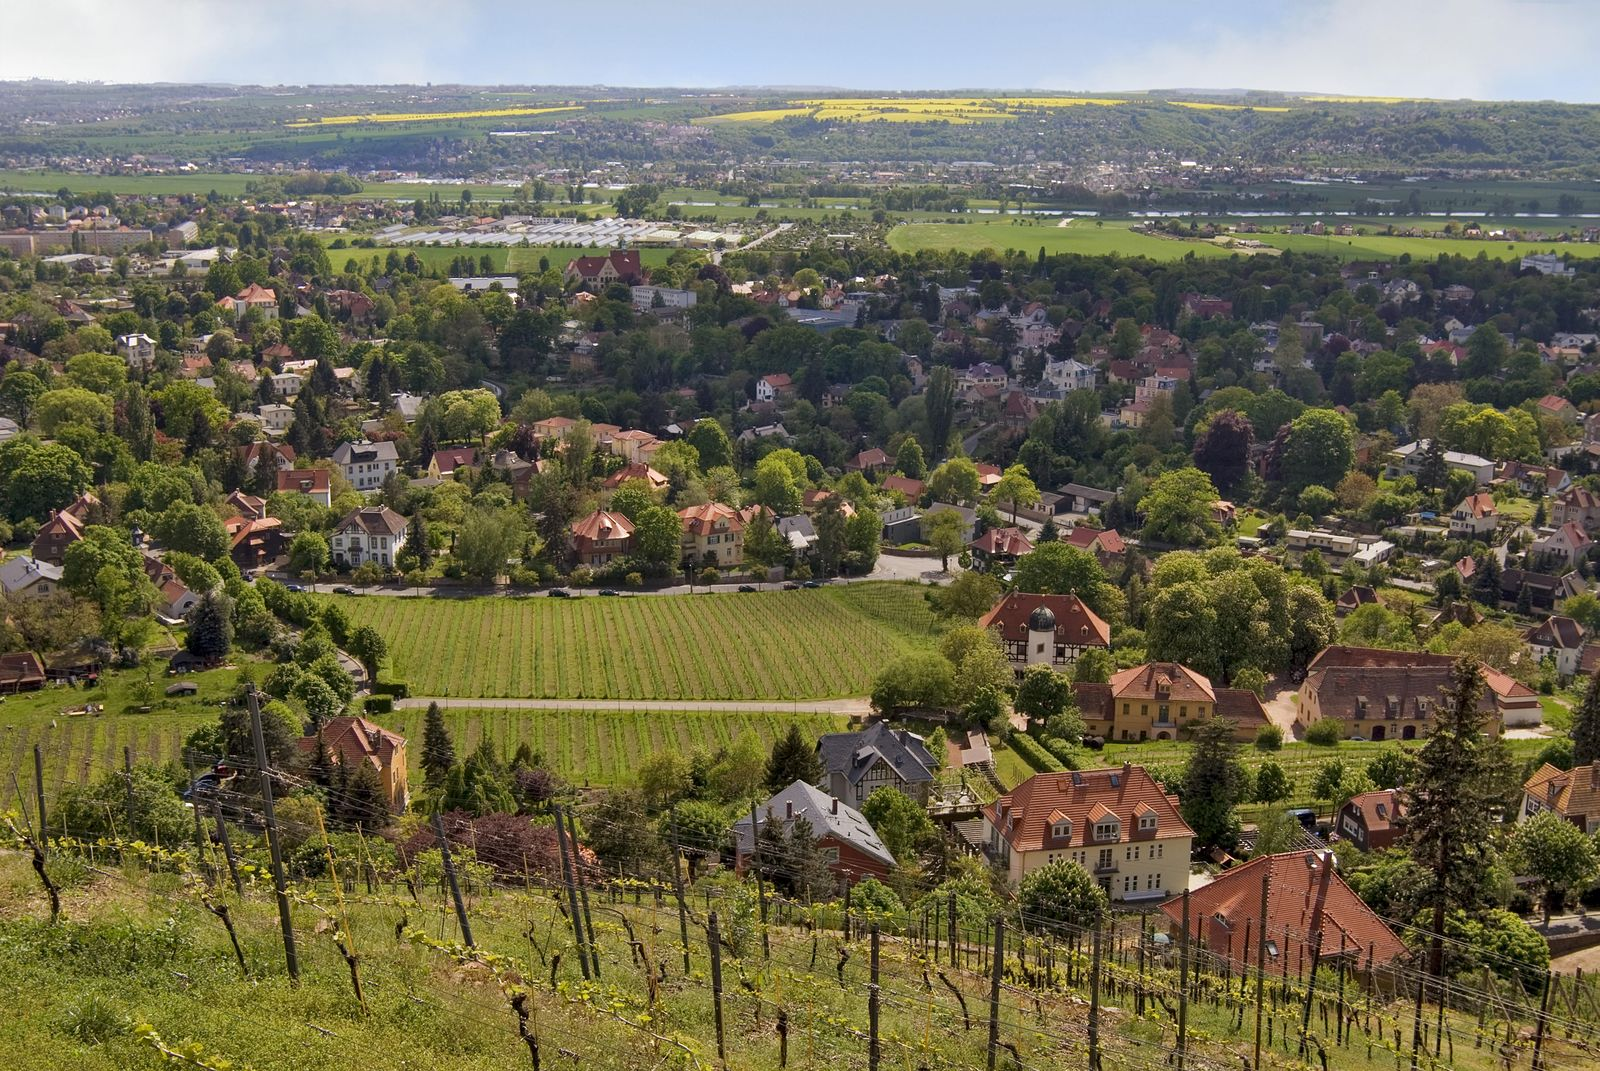 Stock Photo of a view over the Elbe Valleya world heritage area seen from the Vineyards of Radebeul near Dresden. The image was taken on a bright sunny day.